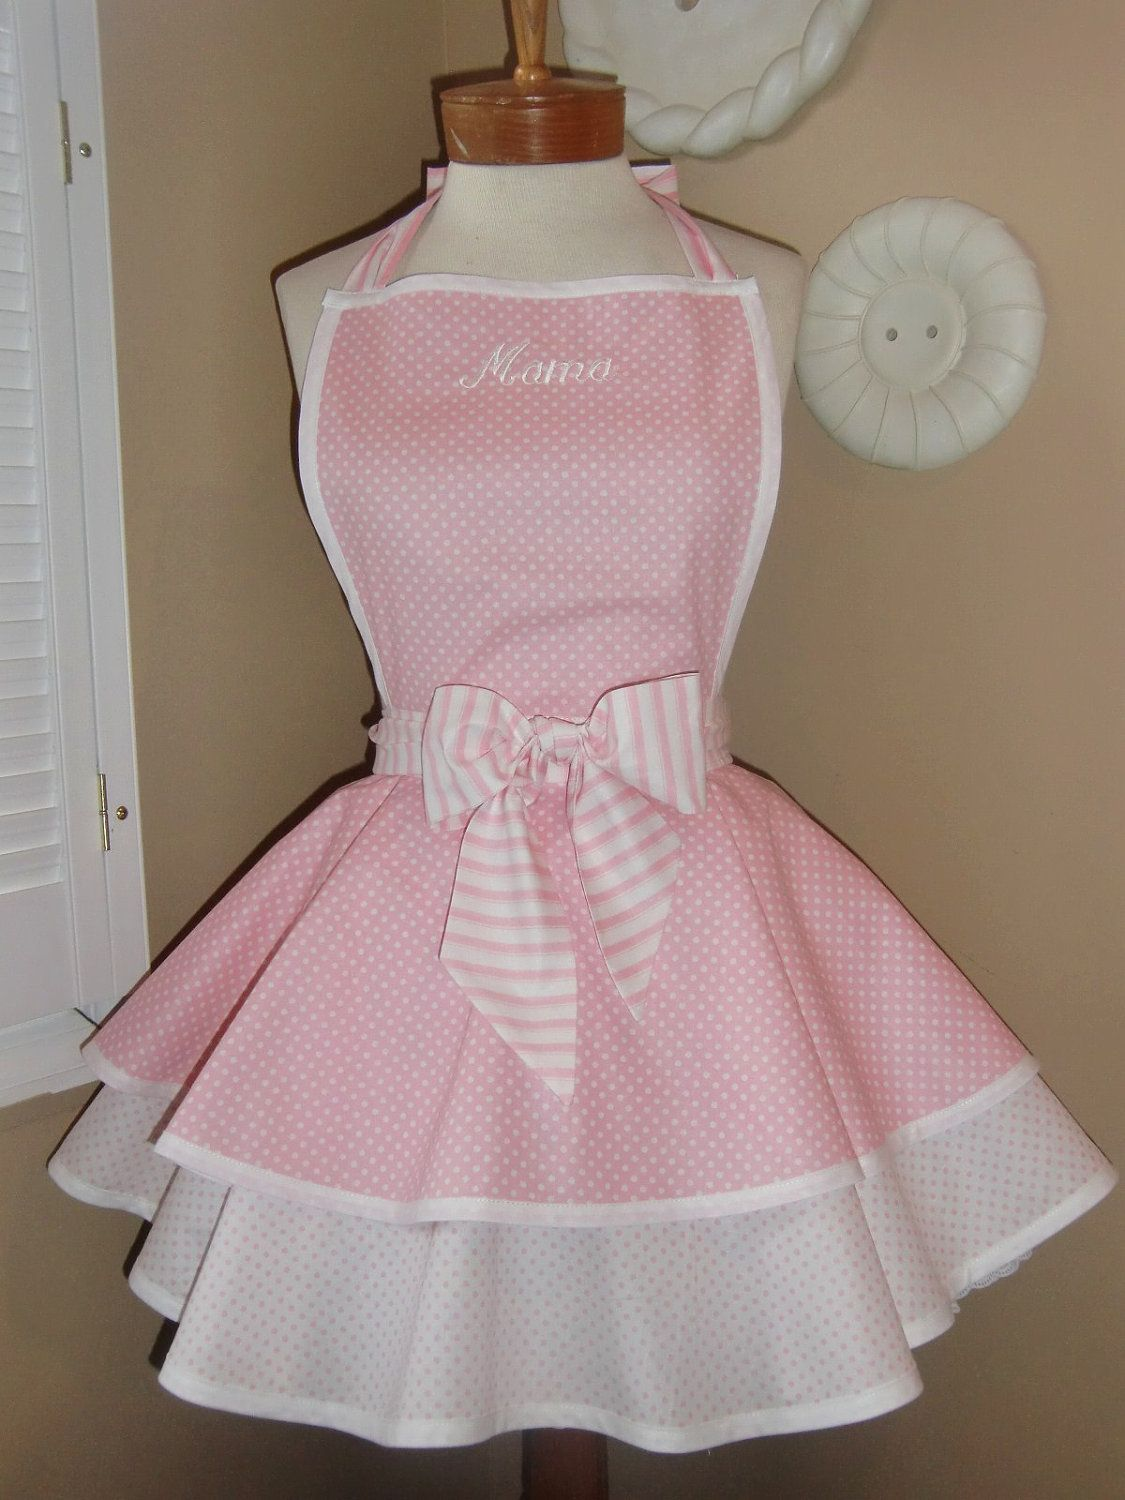 Perosnalized Retro Apron for my wedding helpers (from mamamadison on ...